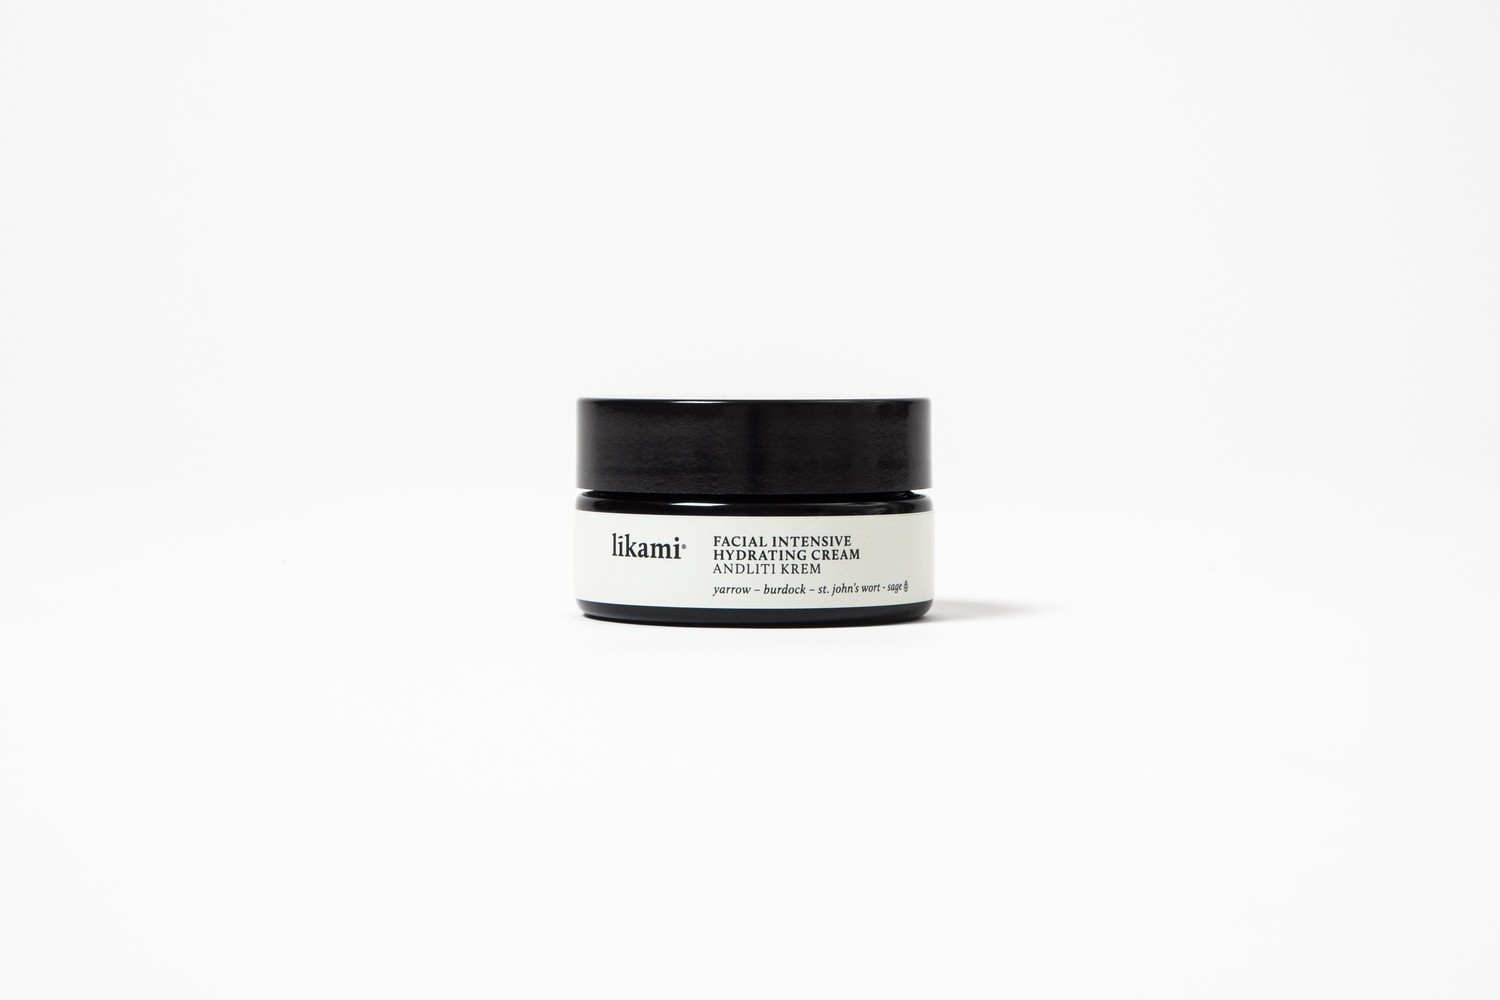 FACIAL INTENSIVE HYDRATING CREAM - LIKAMI